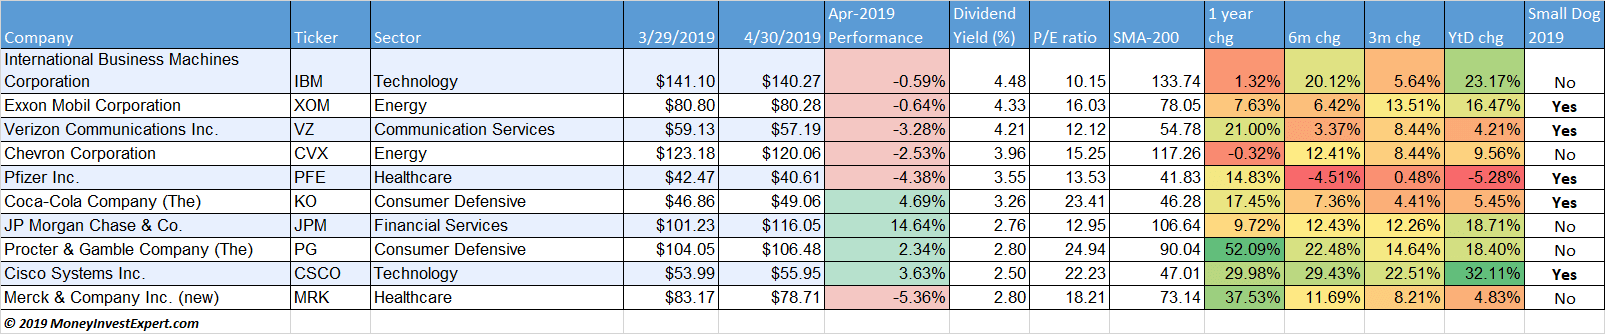 dogs-of-the-dow-april-2019-table